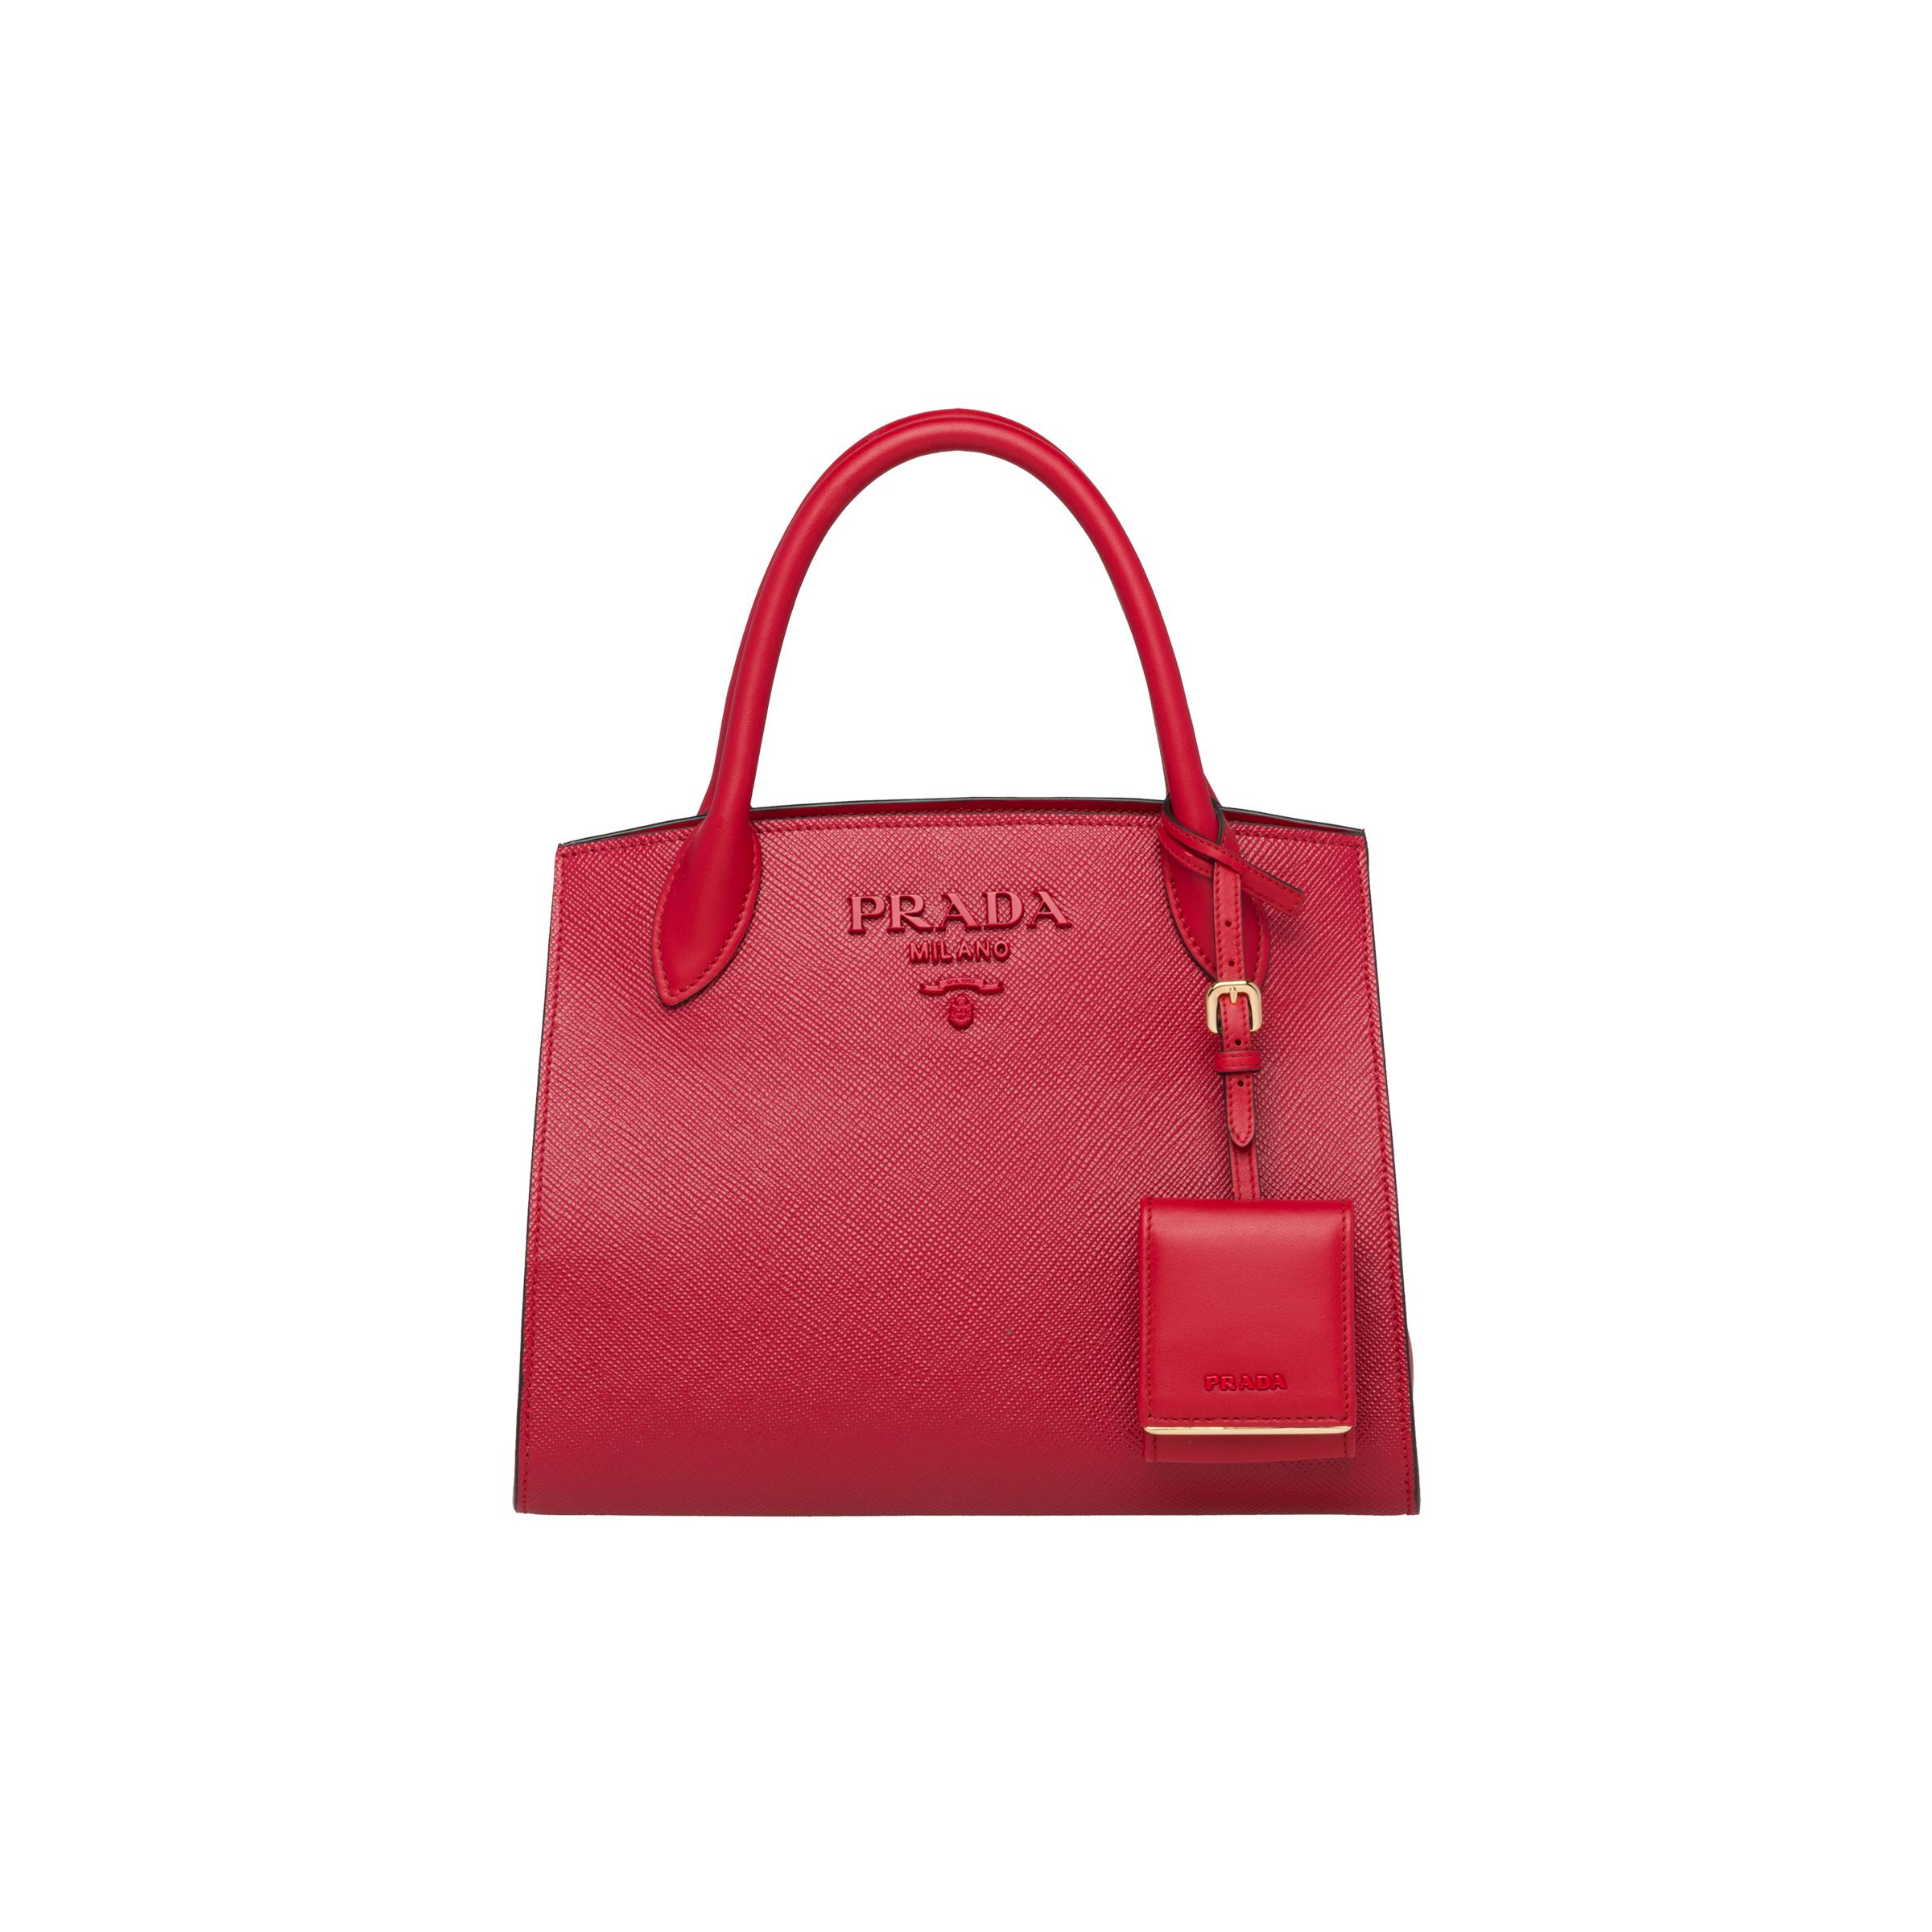 Small Saffiano Leather Prada Monochrome Bag Women Fiery Red